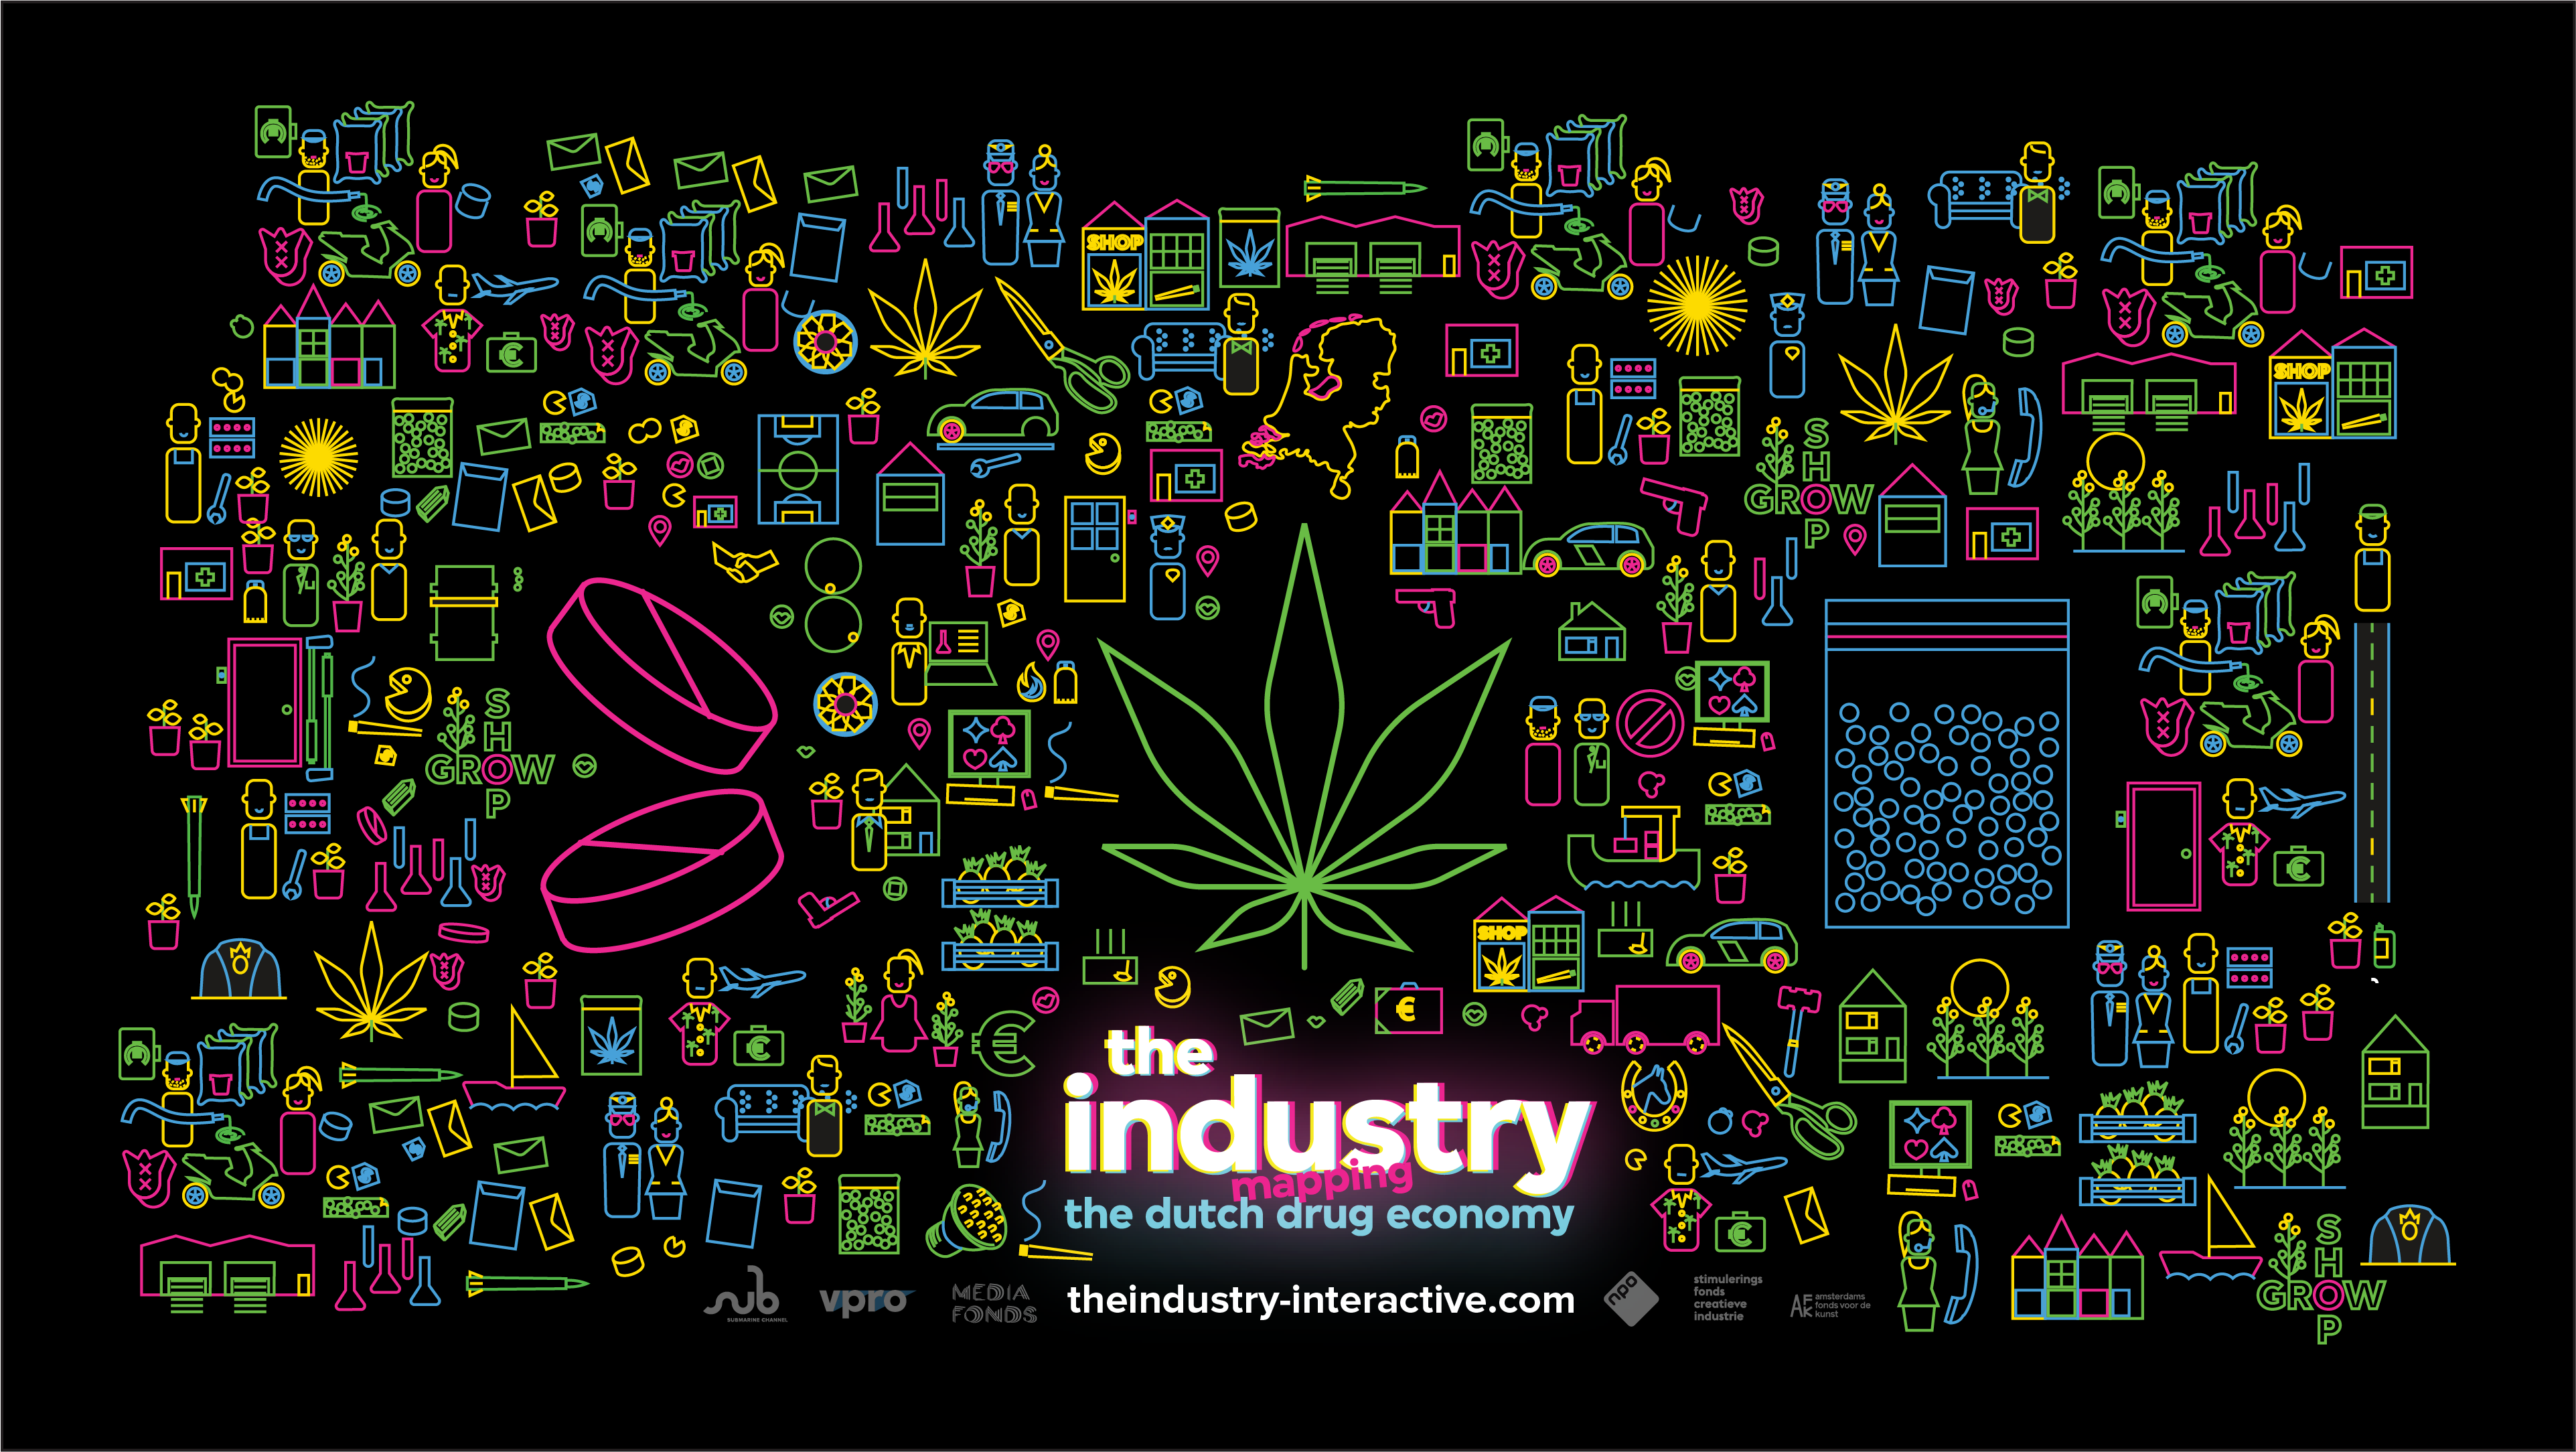 The Industry - Mapping the Dutch Drug Economy